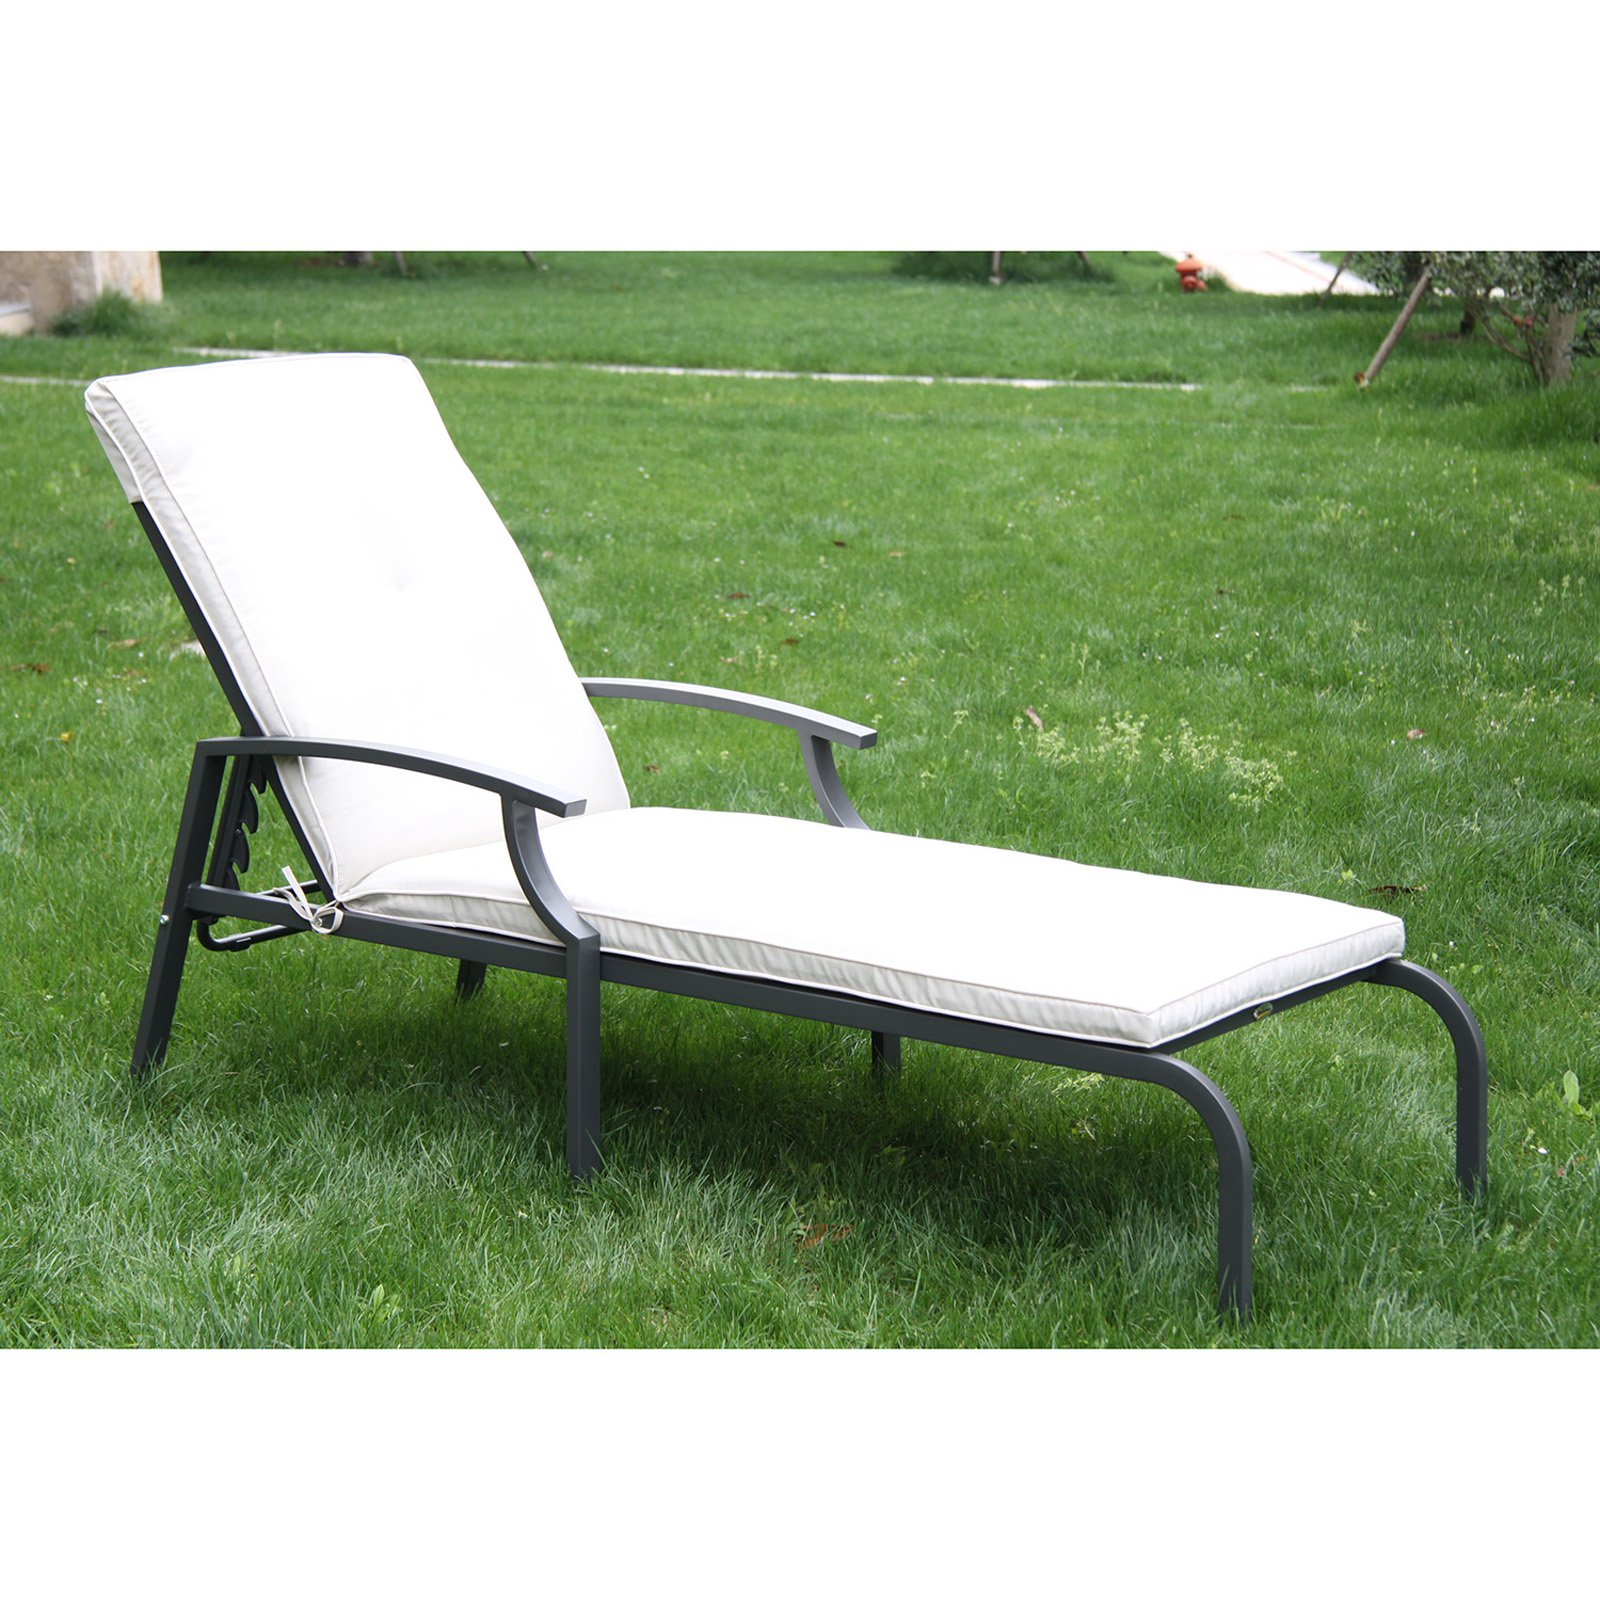 Outsunny Adjustable Chaise Lounge Patio Chair by Aosom